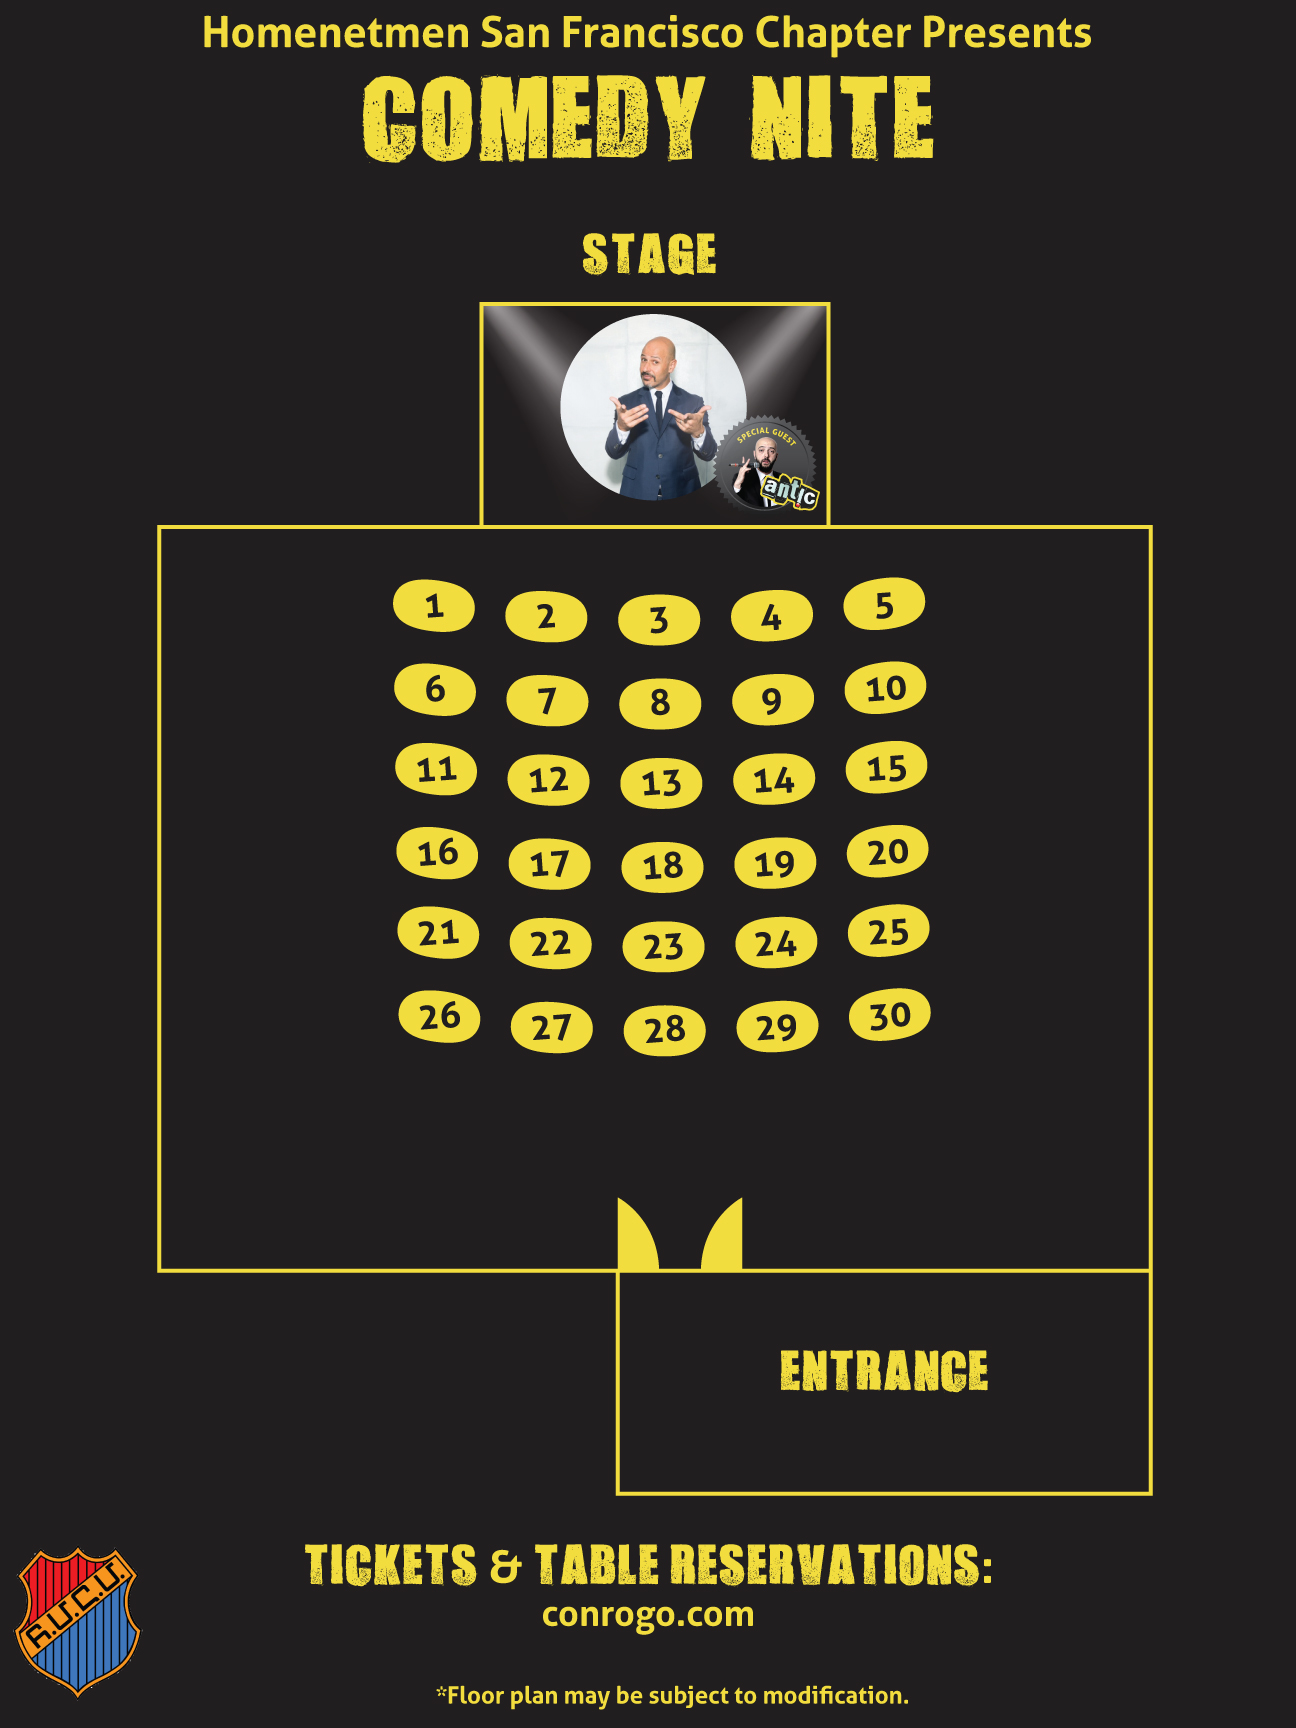 Maz Jobrani Comedy Nite with Special Guest Antic! seating plan